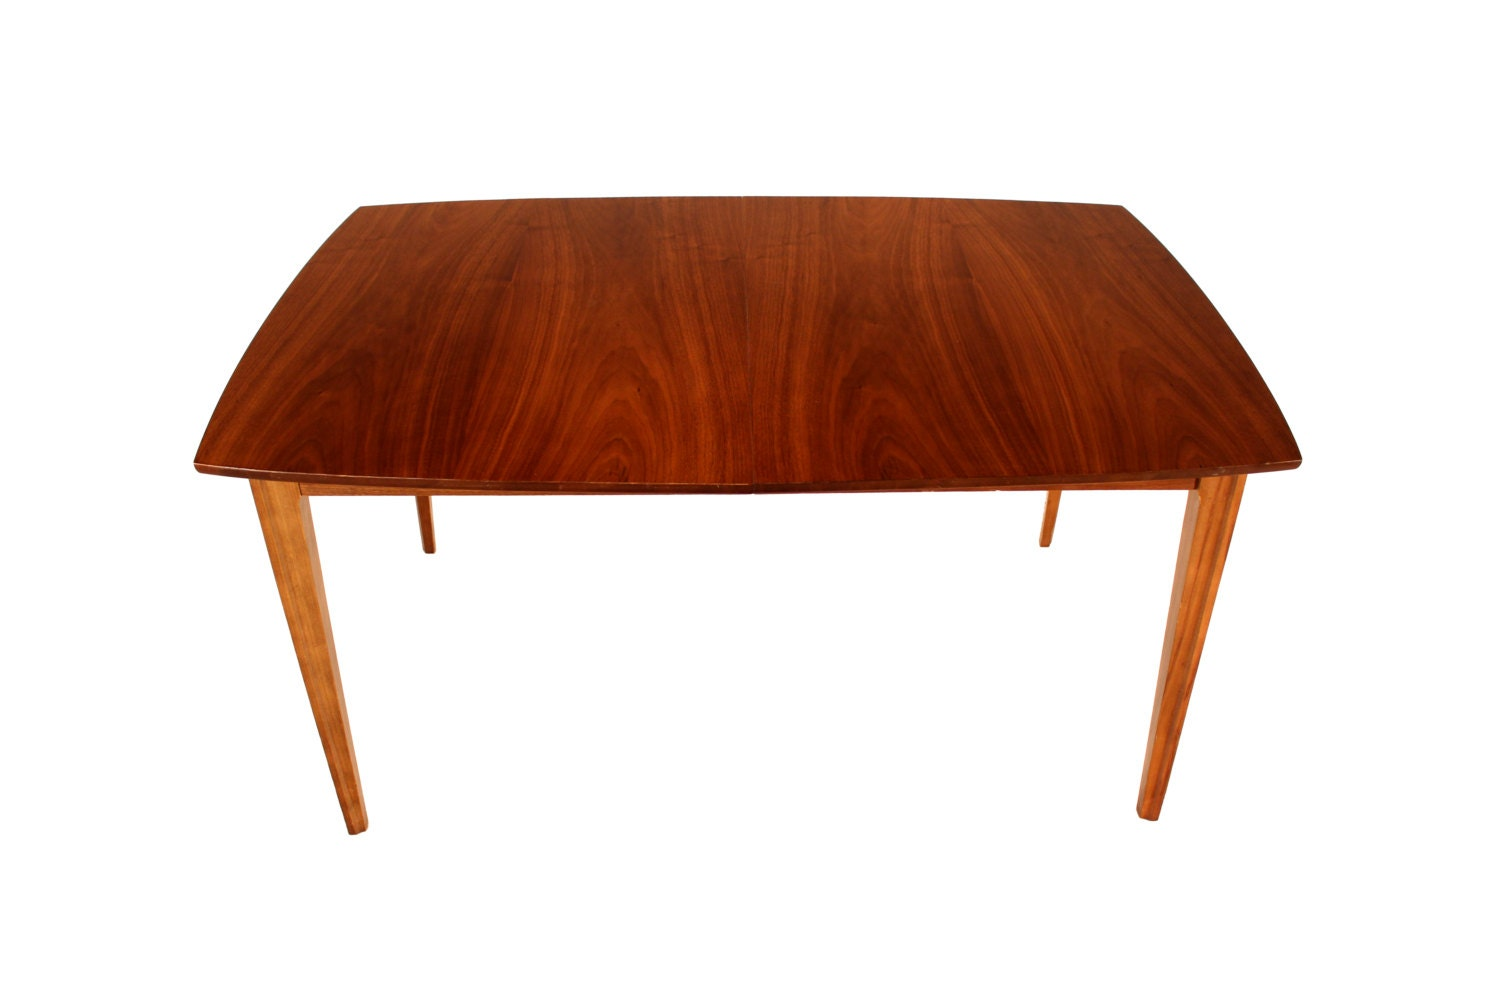 Broyhill Brasilia Dining Table With 3 Leaves By ParkAndParisDecor